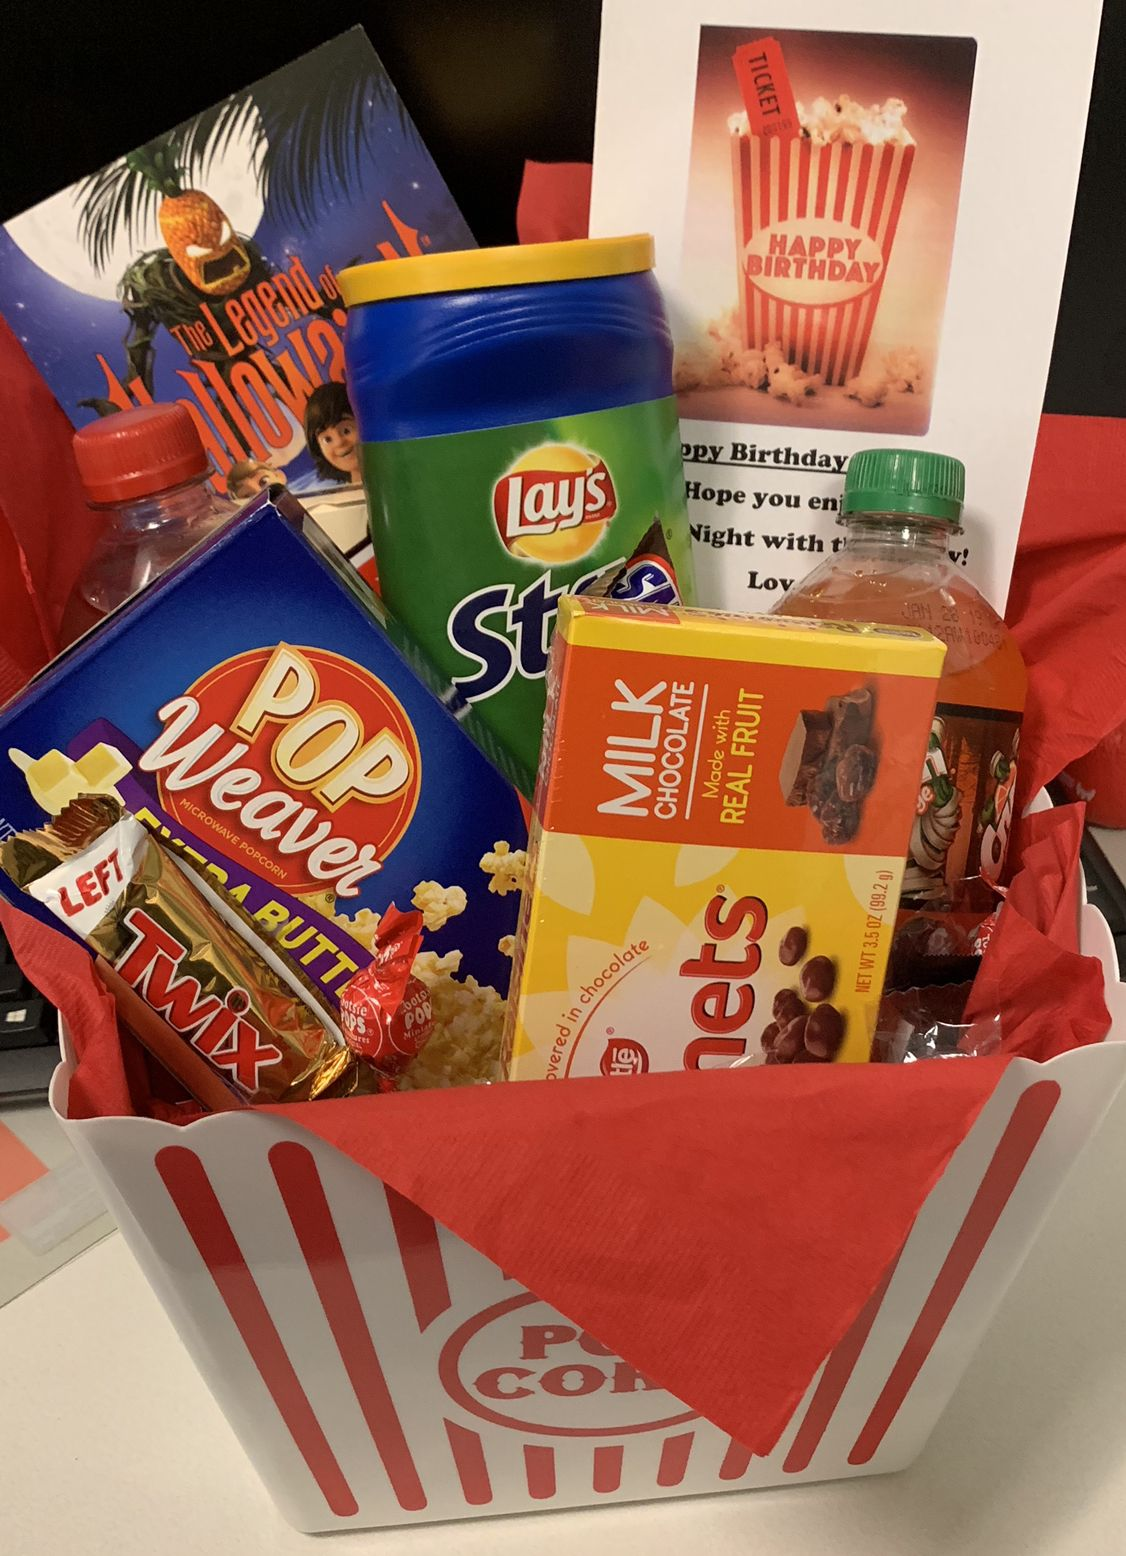 Inc Shared Shopping Cart Movie Night Gift Basket Movie Night Gift Movie Basket Gift